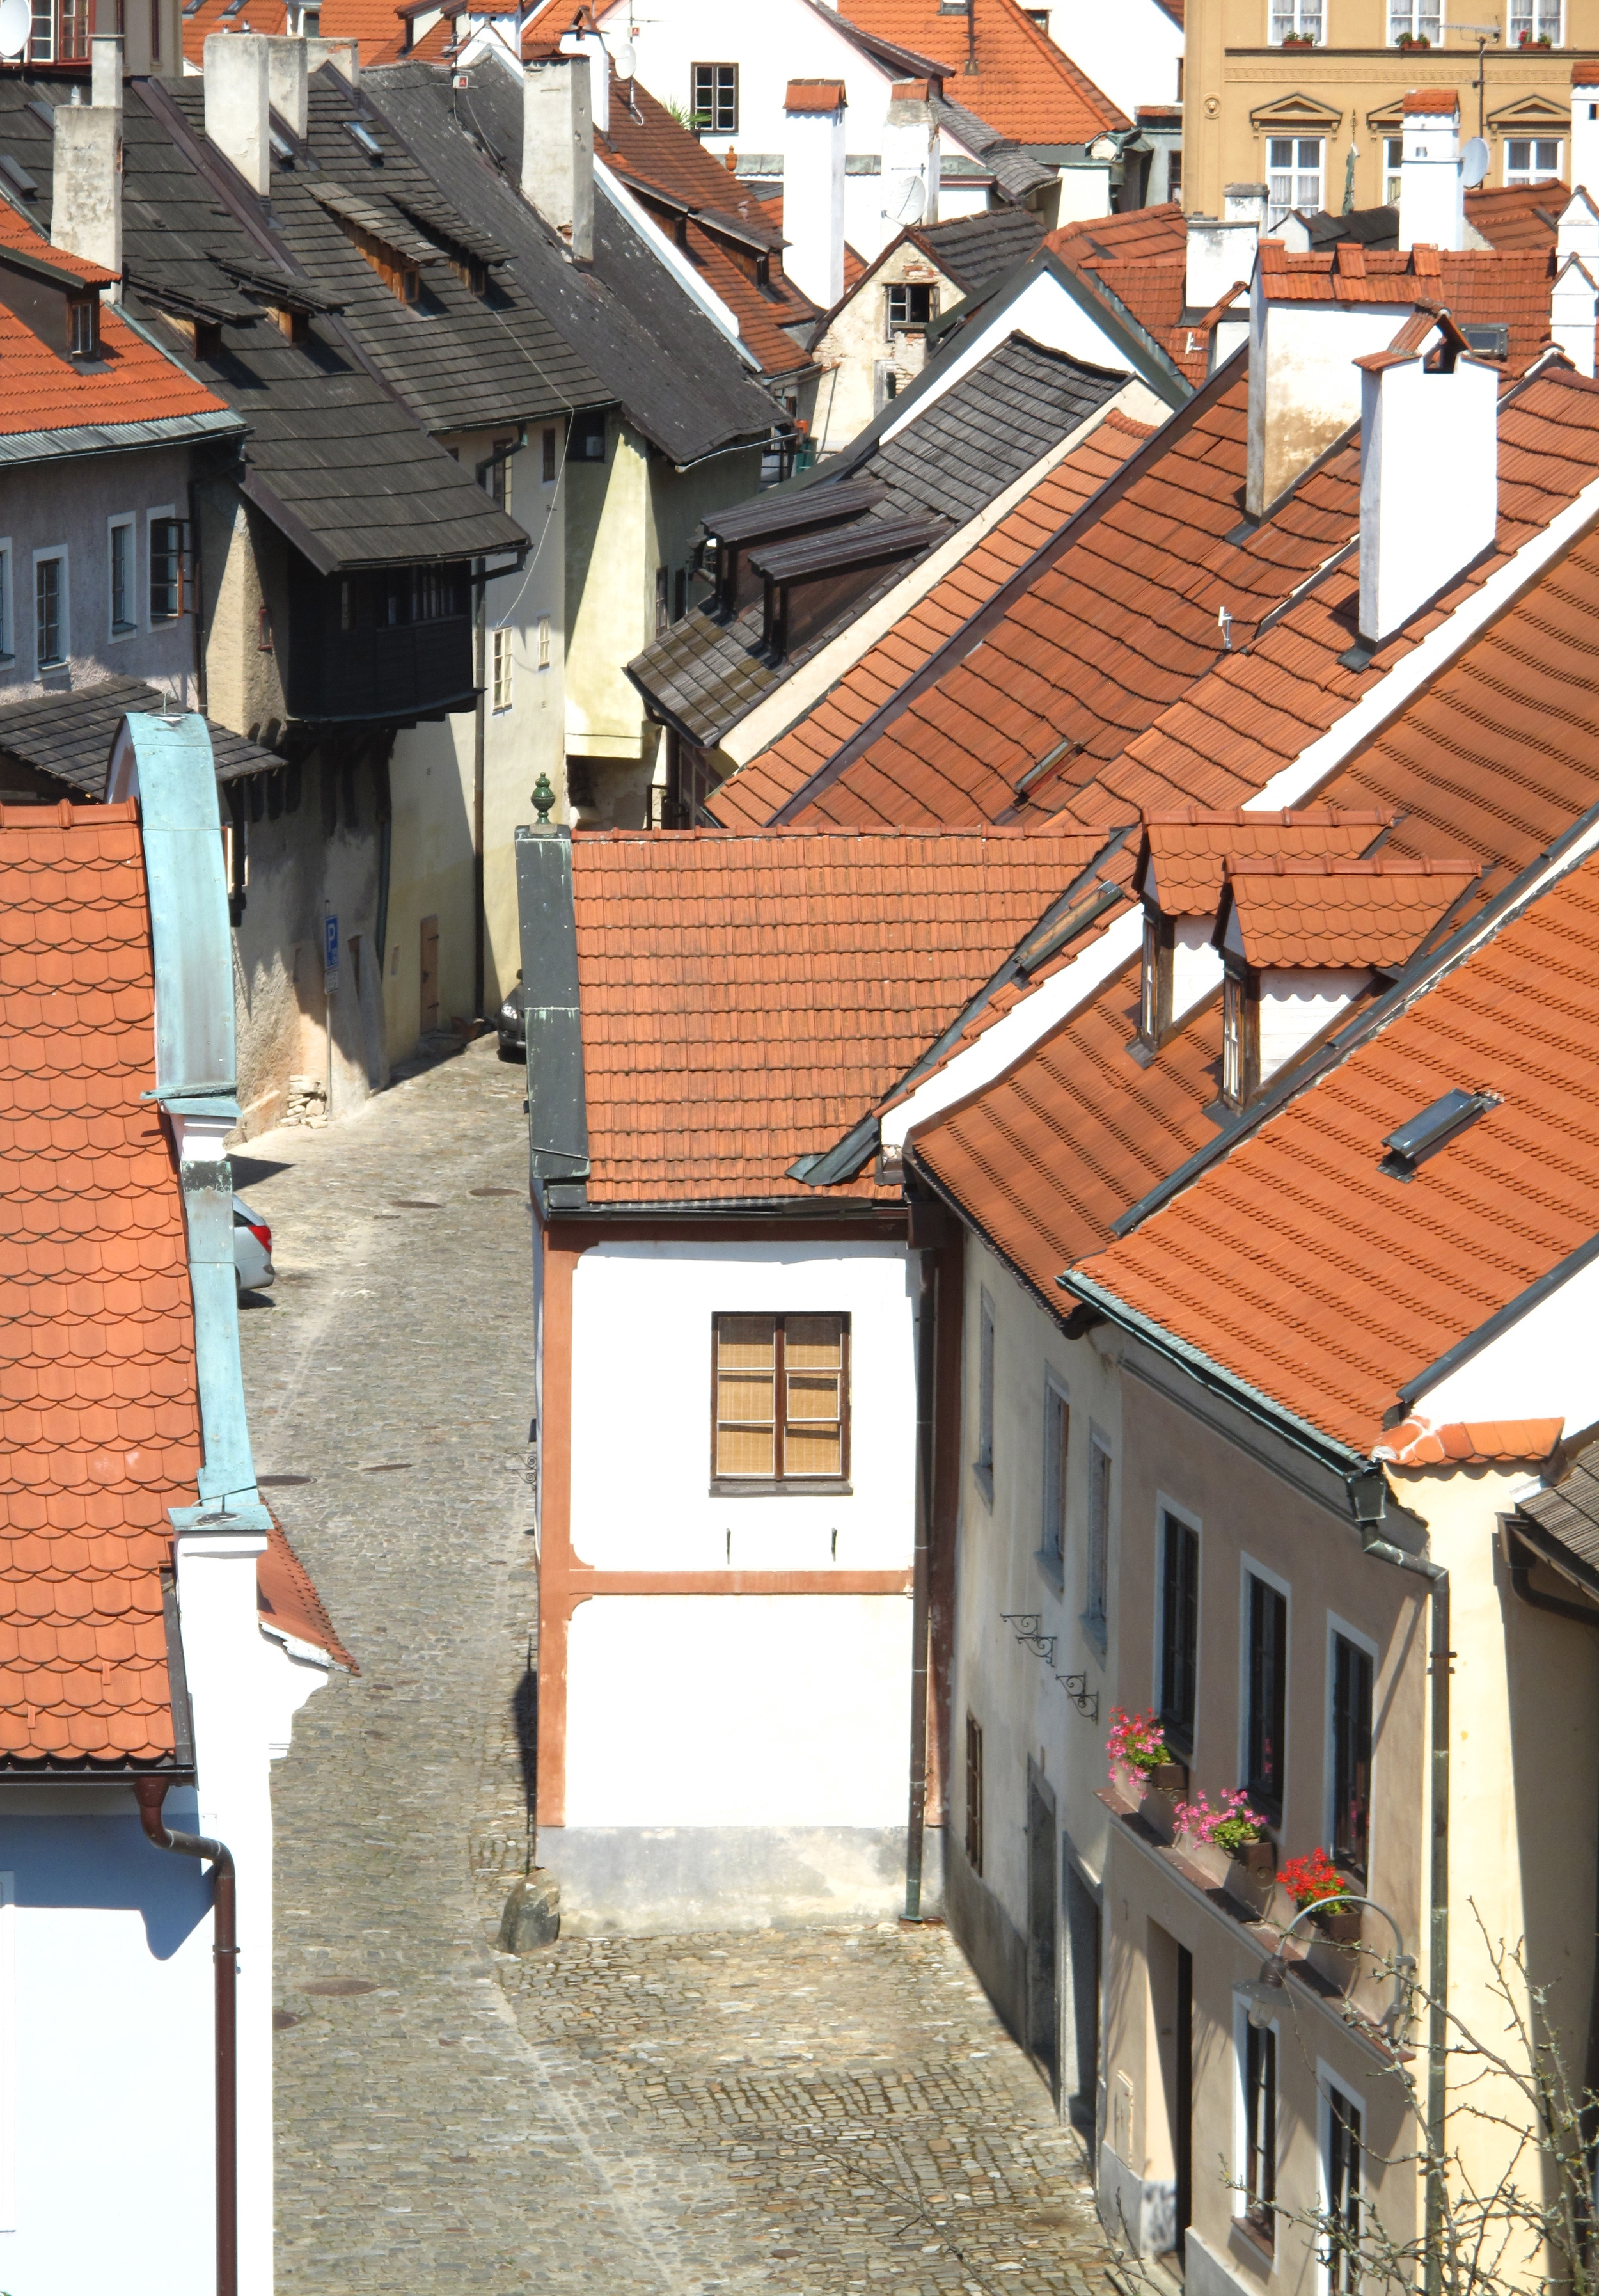 Houses and small lanes in the medieval heart of Cesky Krumlov, Czech Republic.